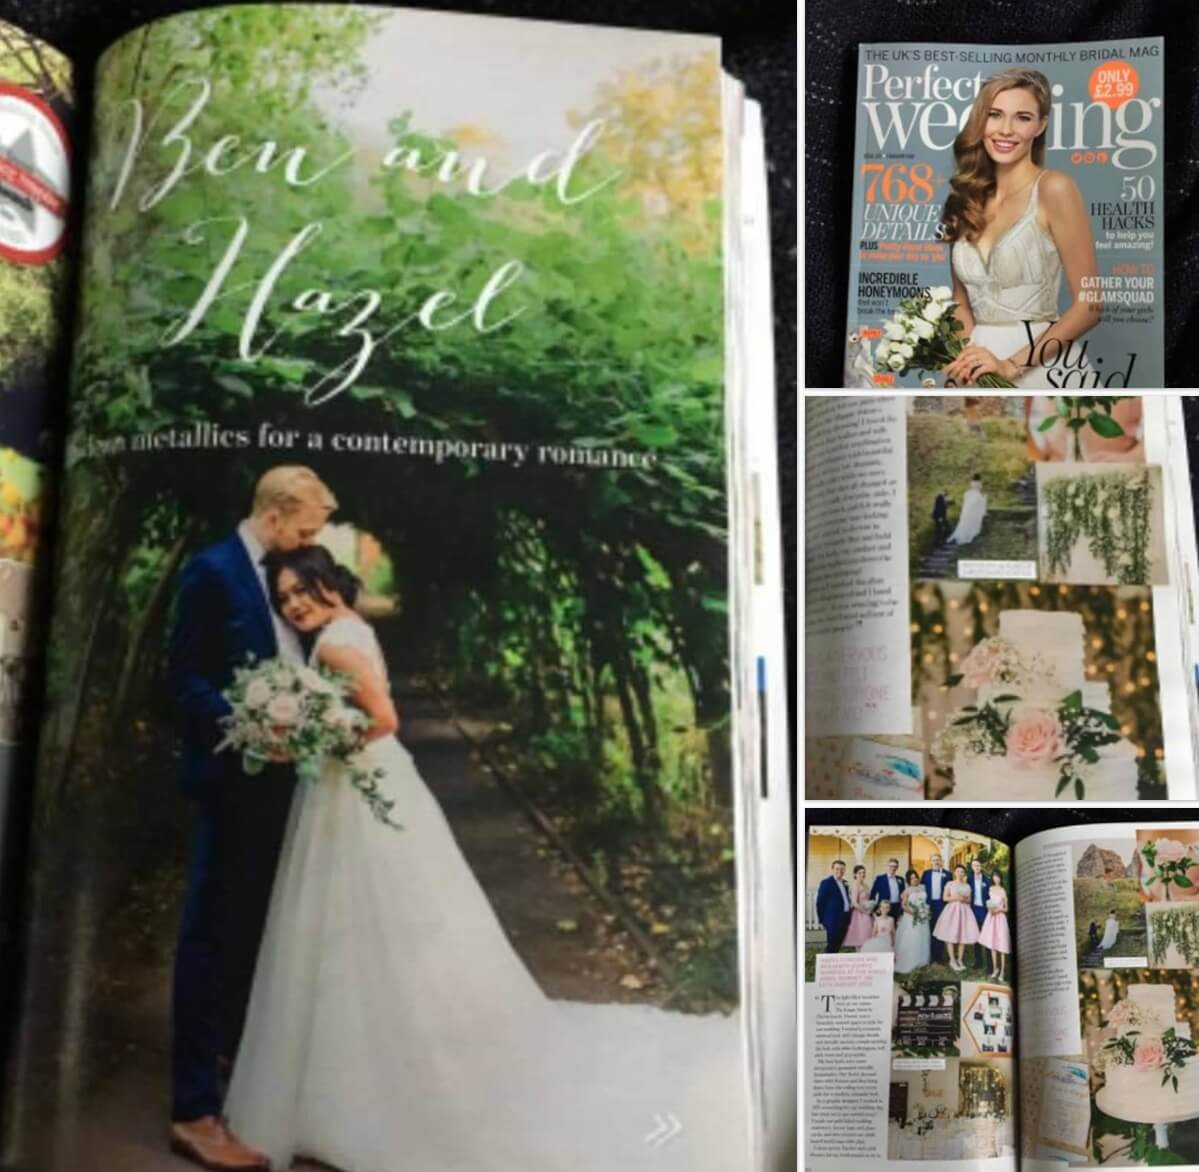 My bride & groom in Perfect Wedding magazine.